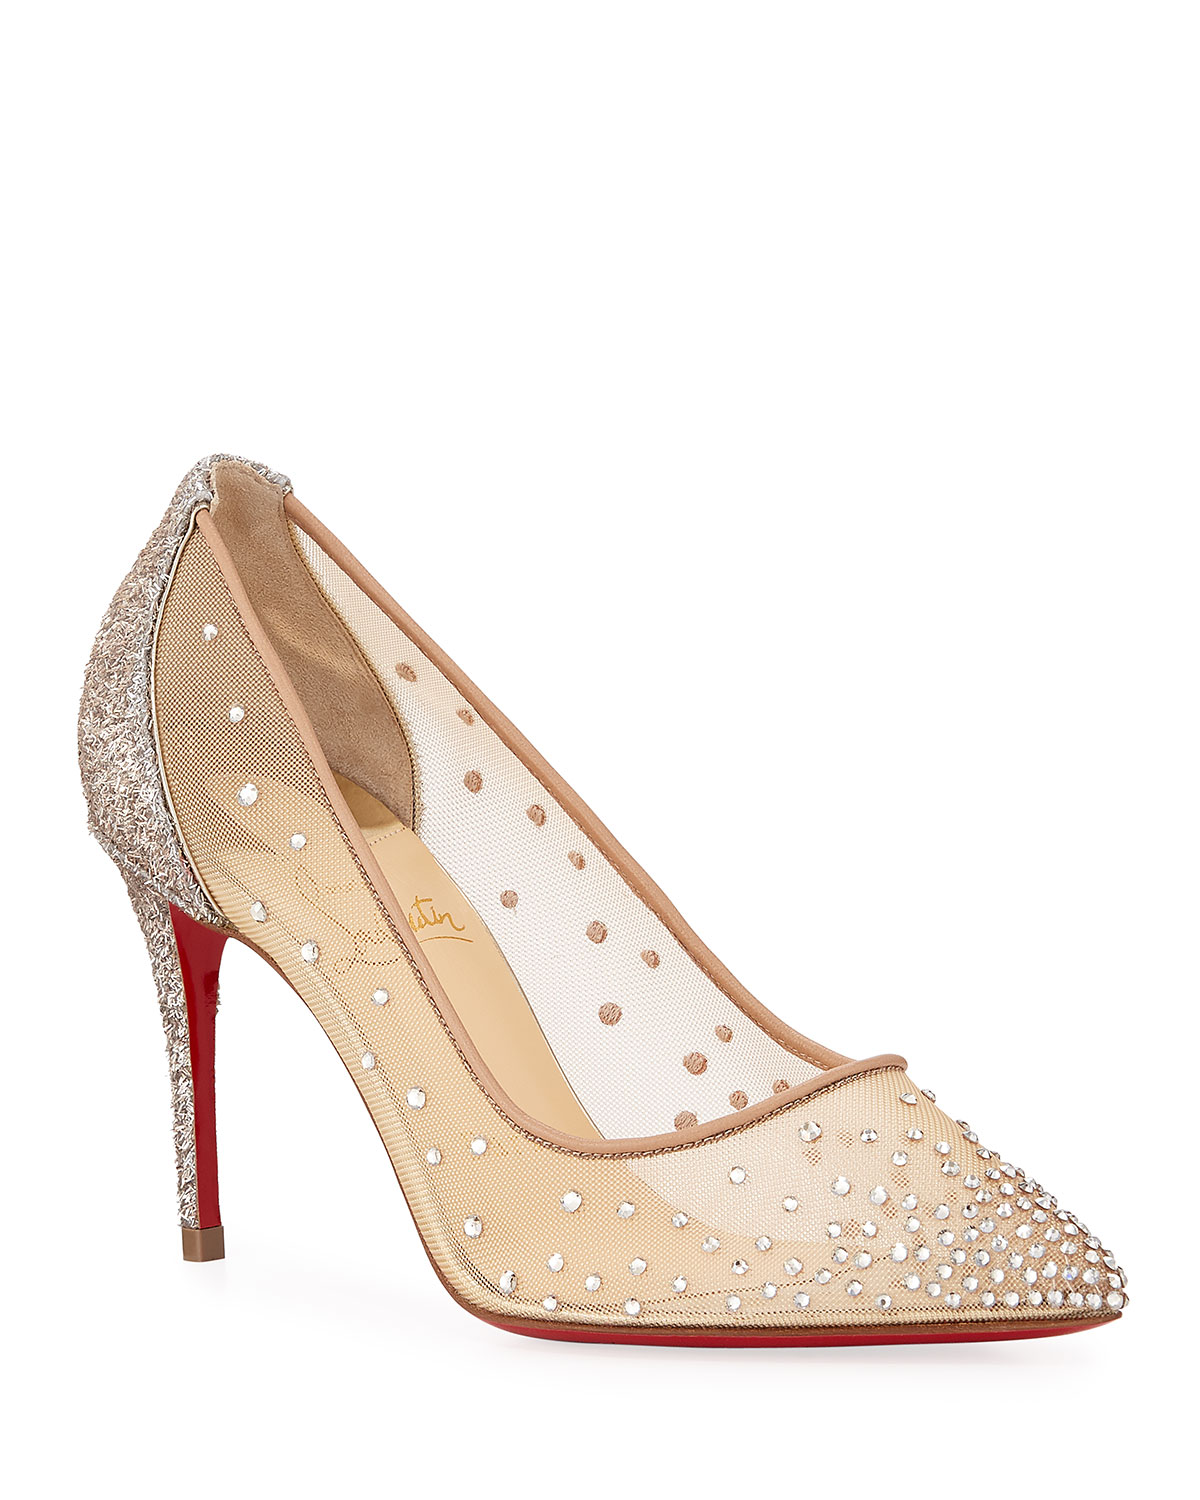 6888f78dfdac Christian Louboutin Follies Strass 85mm Glitter-Heel Mesh Red Sole Pumps